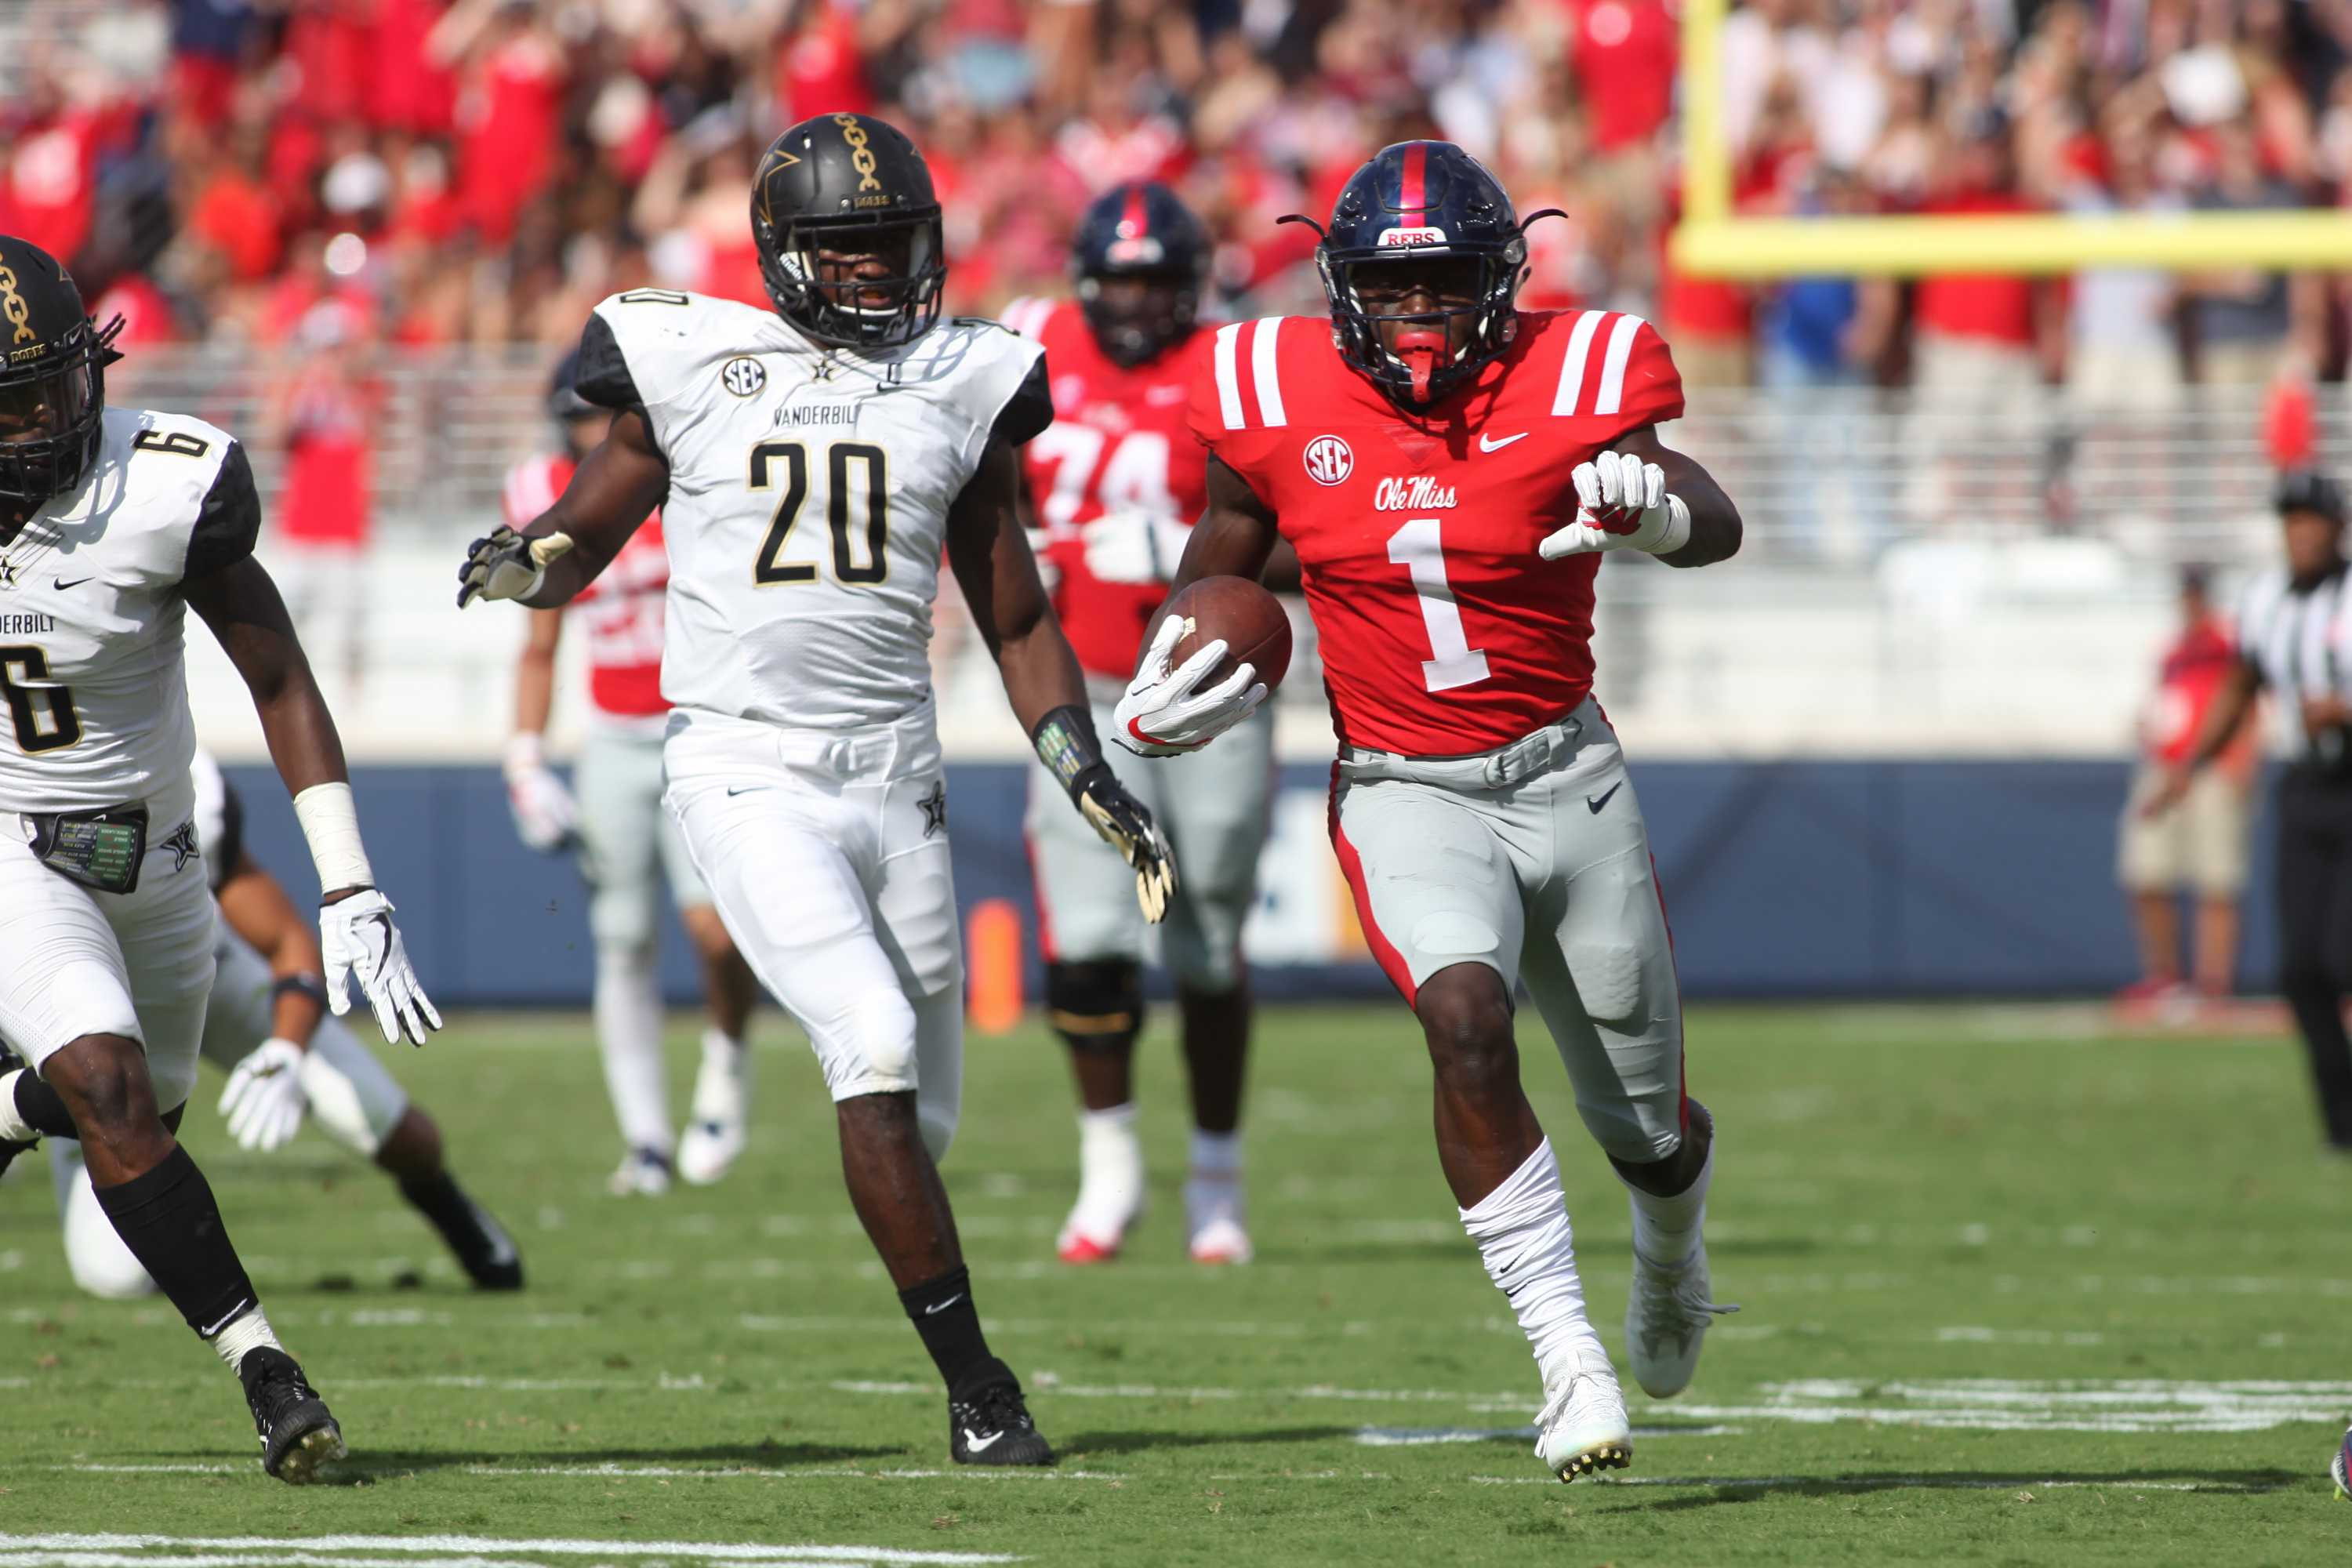 The Commodores play football at Ole Miss on Saturday, October 14, 2017.